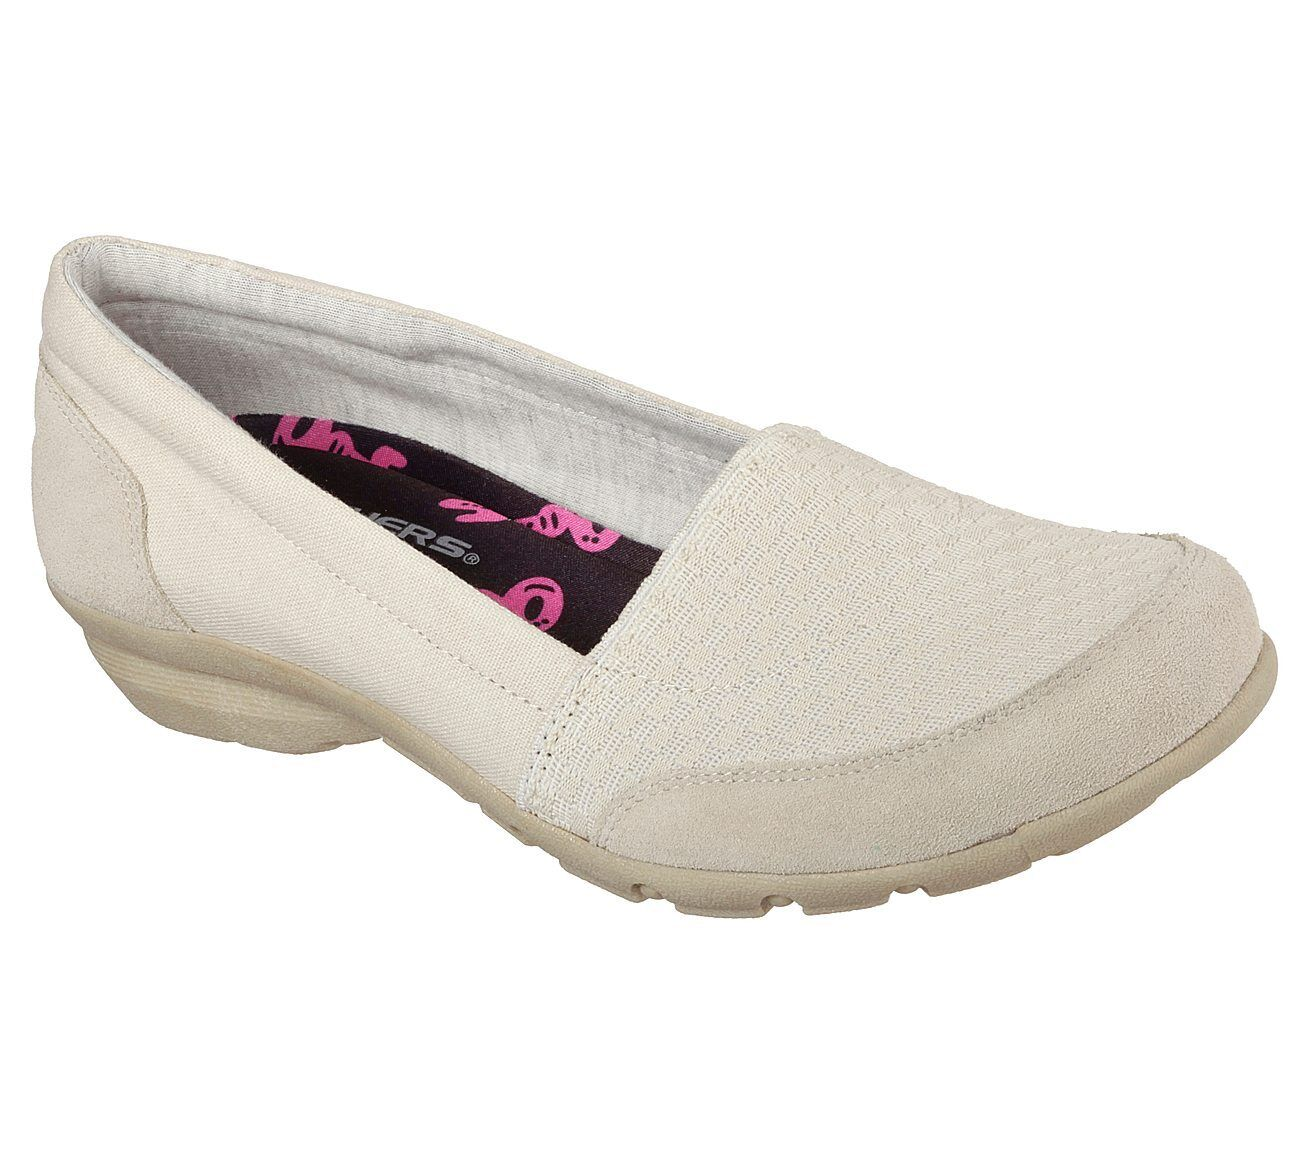 SKECHERS RELAXED FIT  CAREER - INTERVIEW SIZE UK 6 EU 39 NH091 ii 01